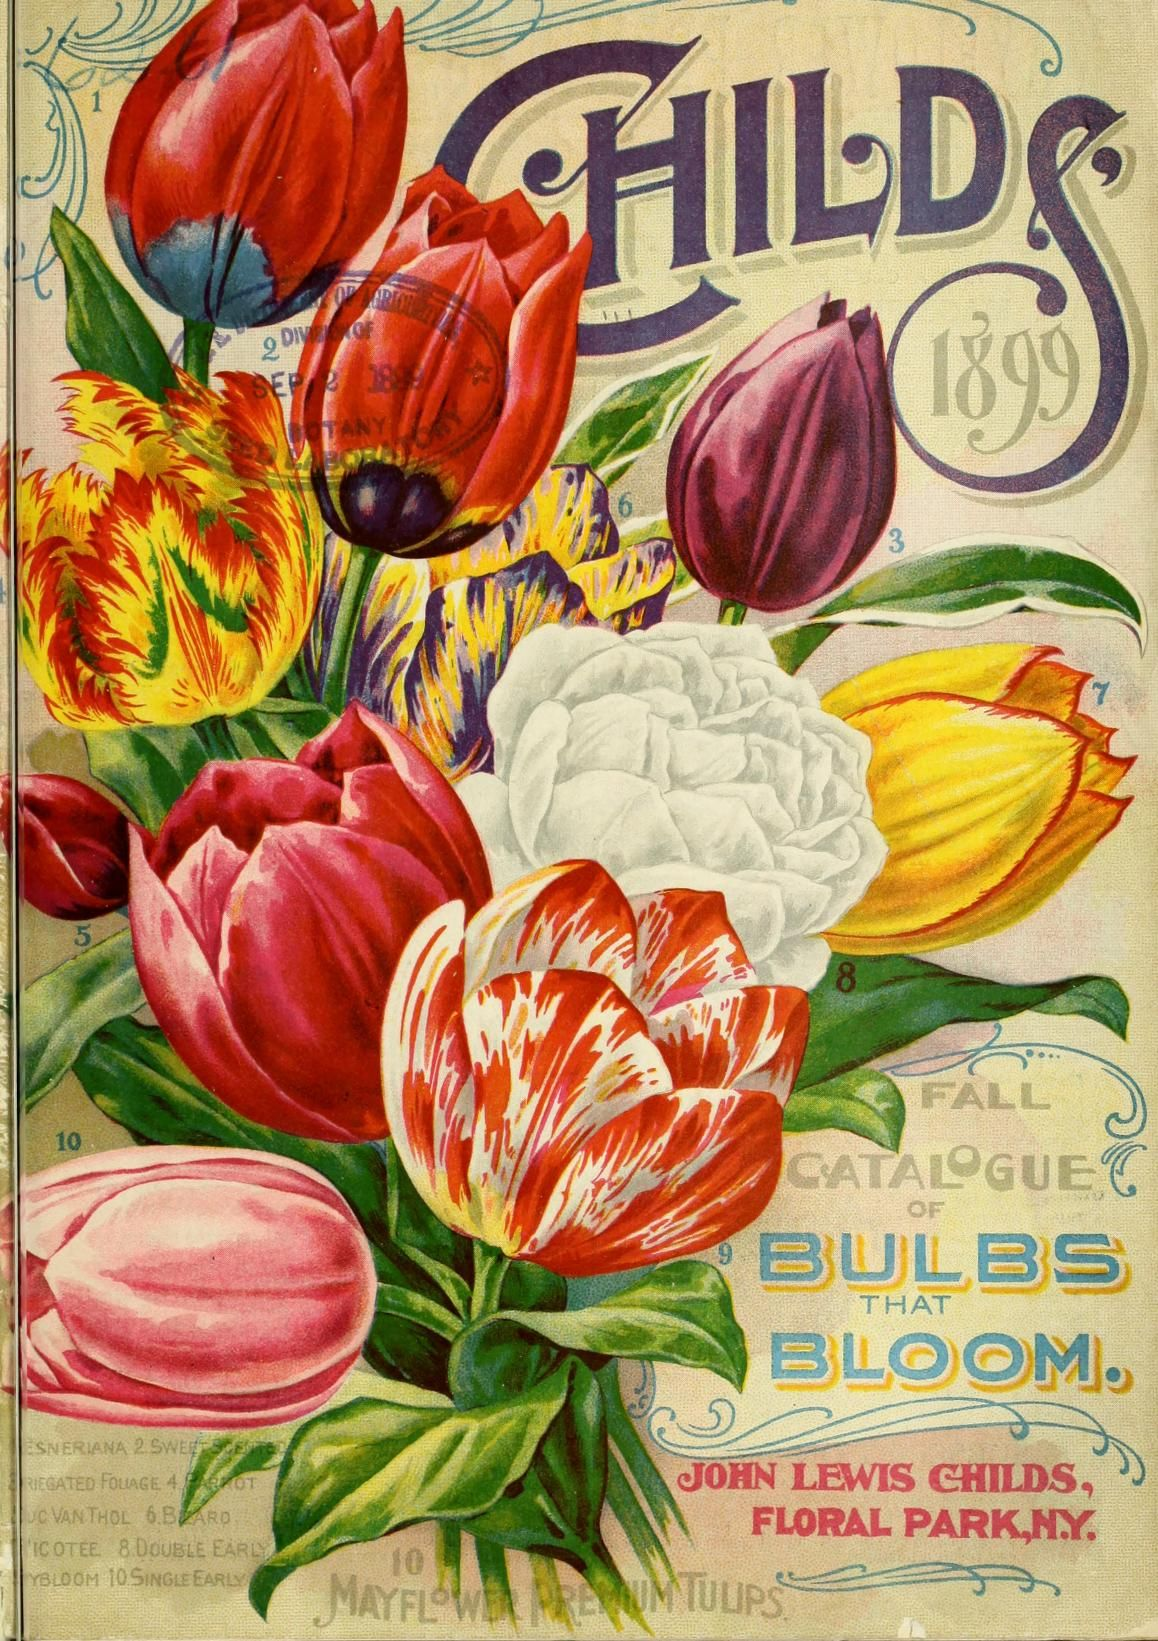 Childs fall catalogue of bulbs that bloom biodiversity